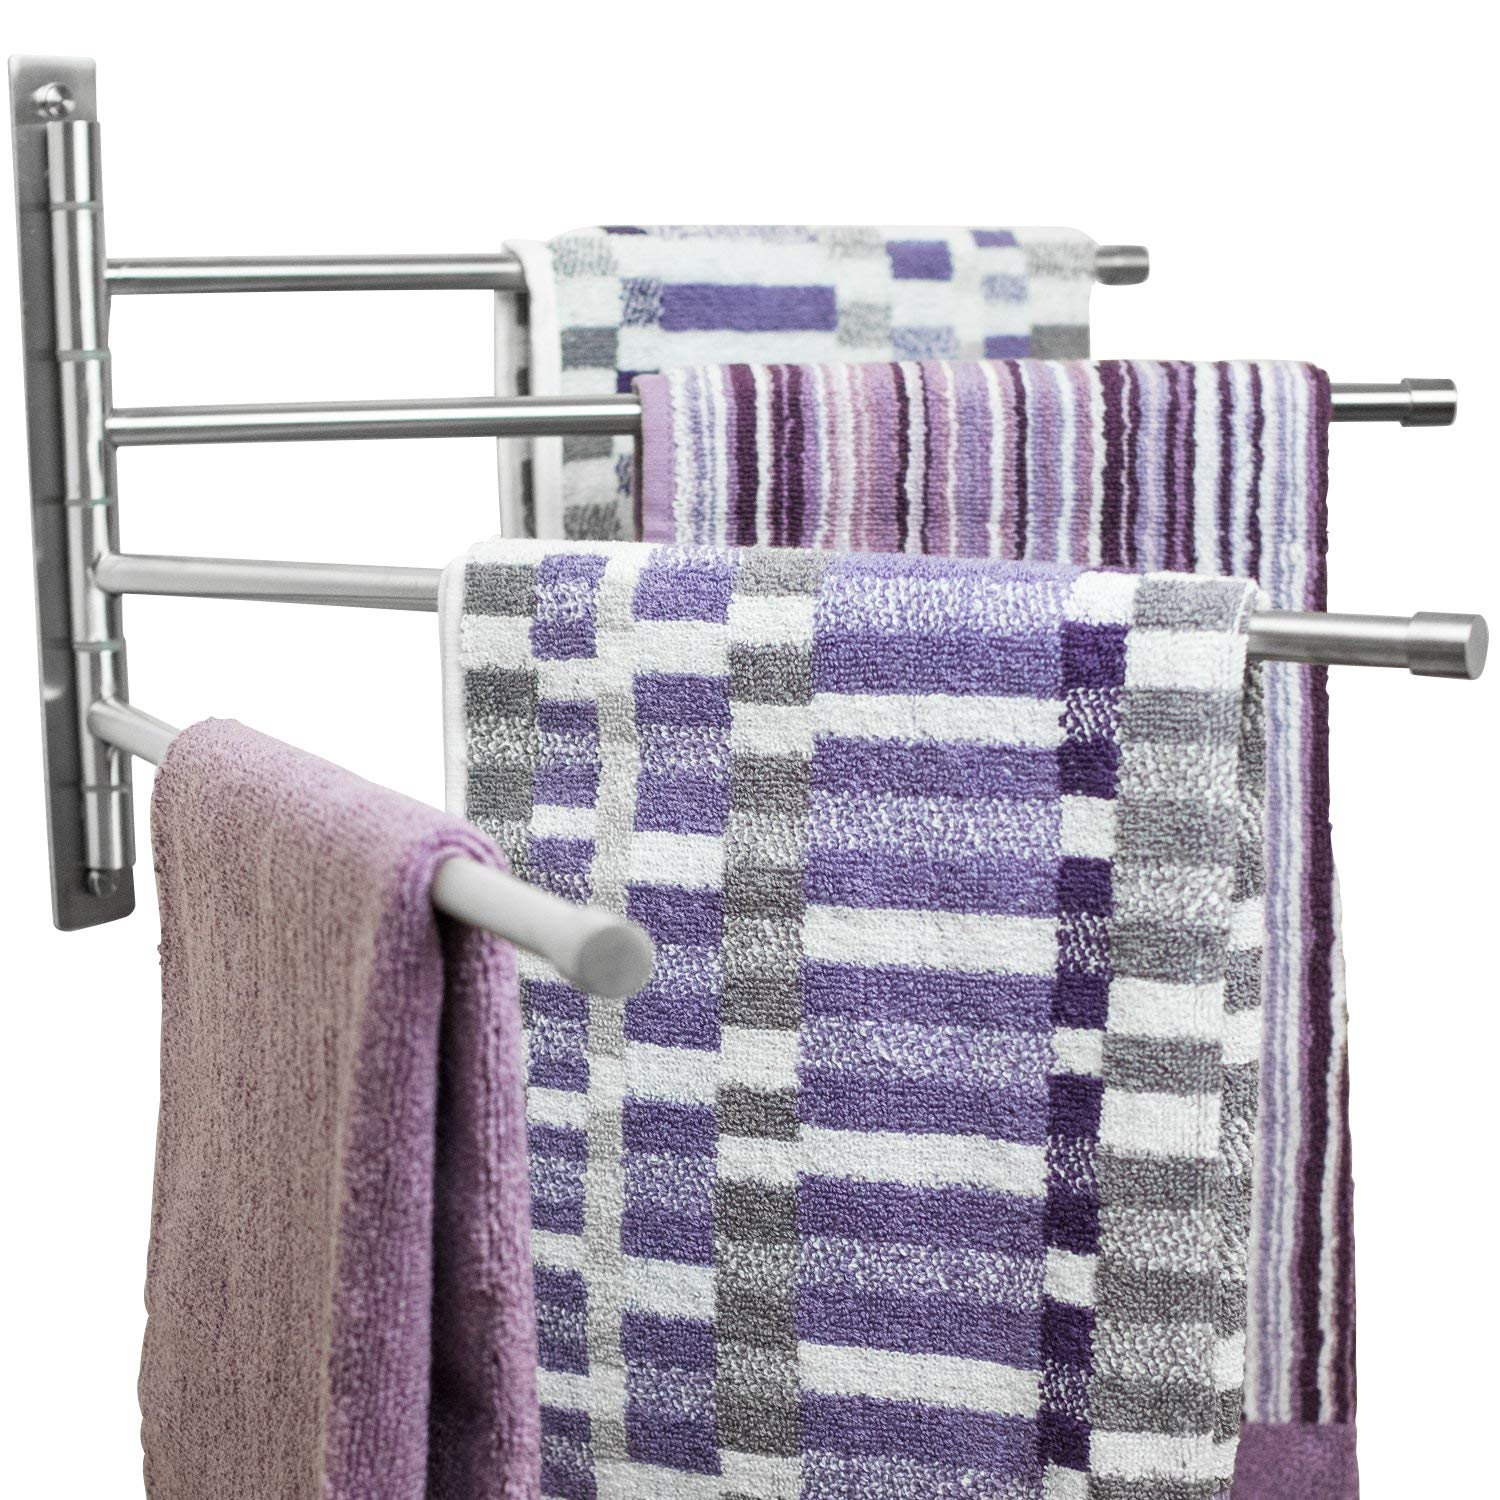 Swing Out Towel Bar - Stainless Steel  Swivel Towel Rack - Space Saving Swinging Towel Bar for Bathroom - Wall Mounted Towel Holder Organizer with 4 Arms- Easy To Install - Brushed Finish (20''X10'') by Yaze Kitchen